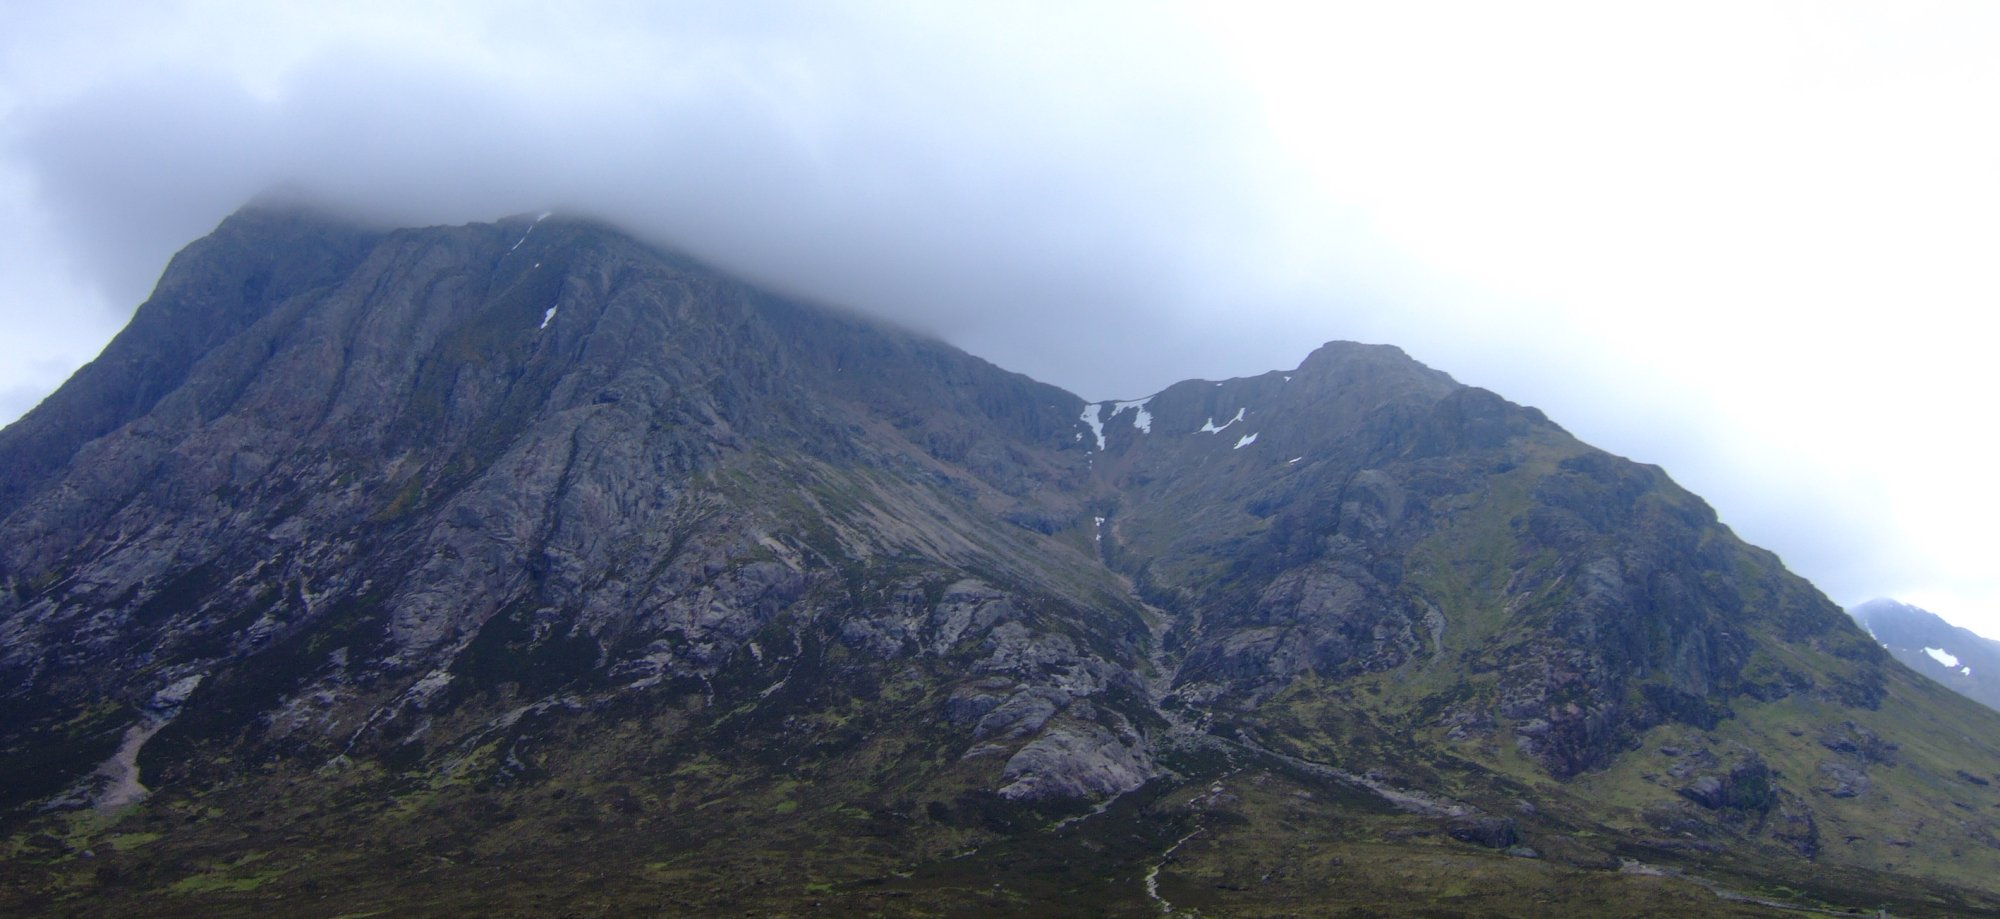 The footpath up through Coire na Tulaich, just about visible running from bottom right of shot to top left